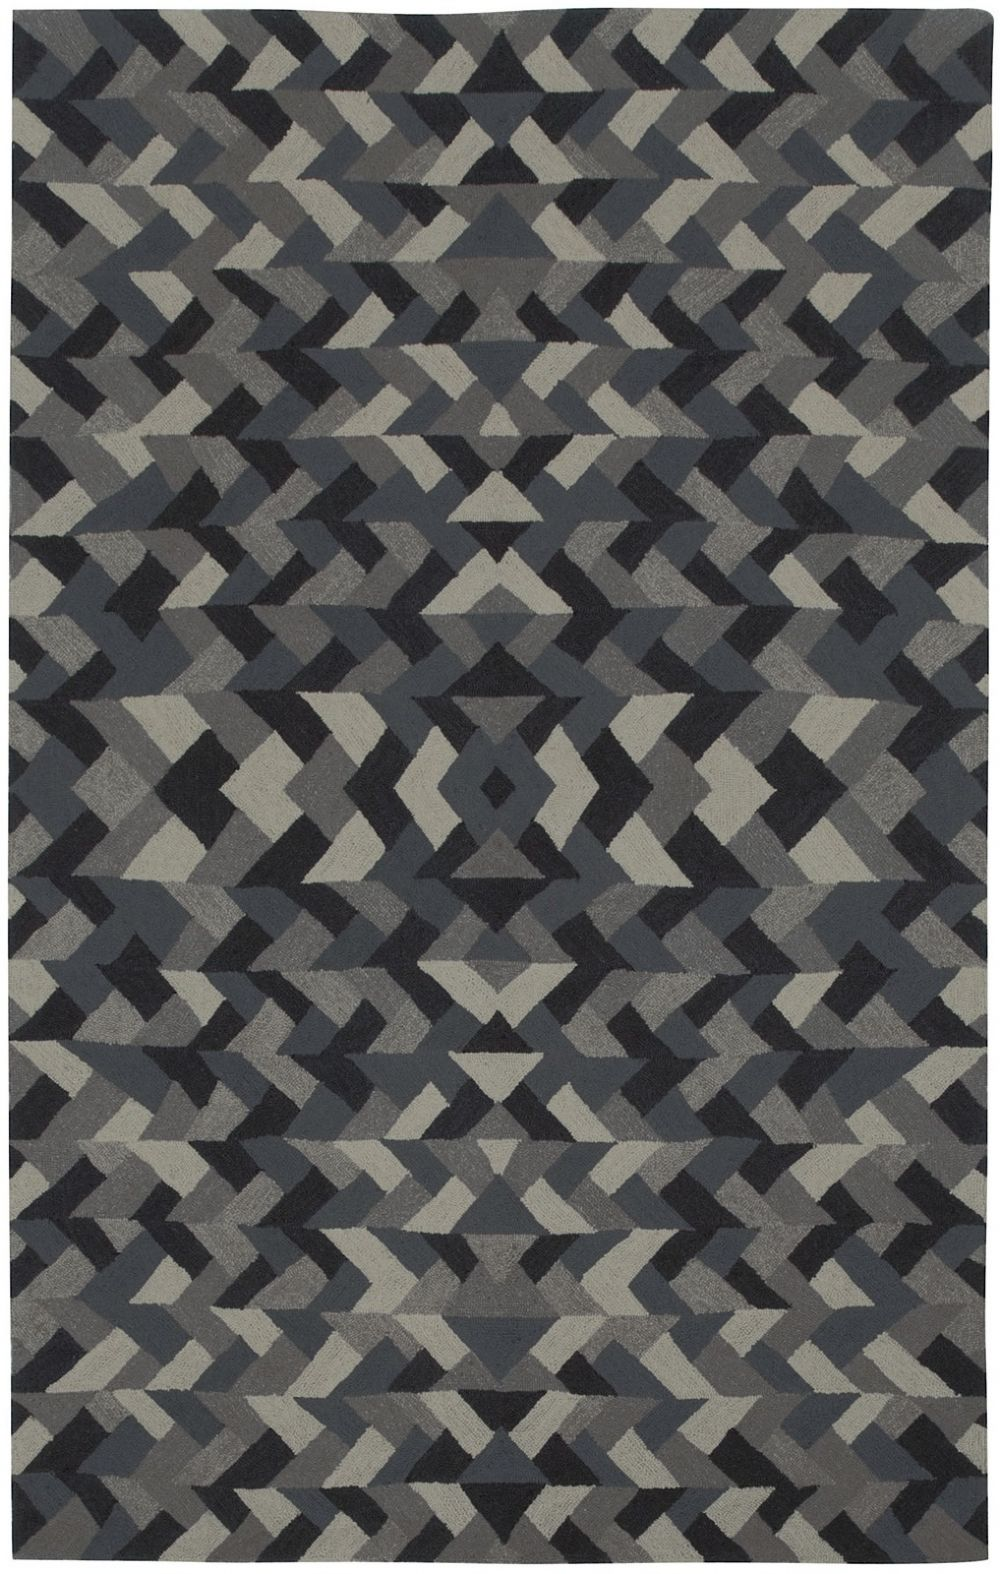 capel charcoal-link contemporary area rug collection